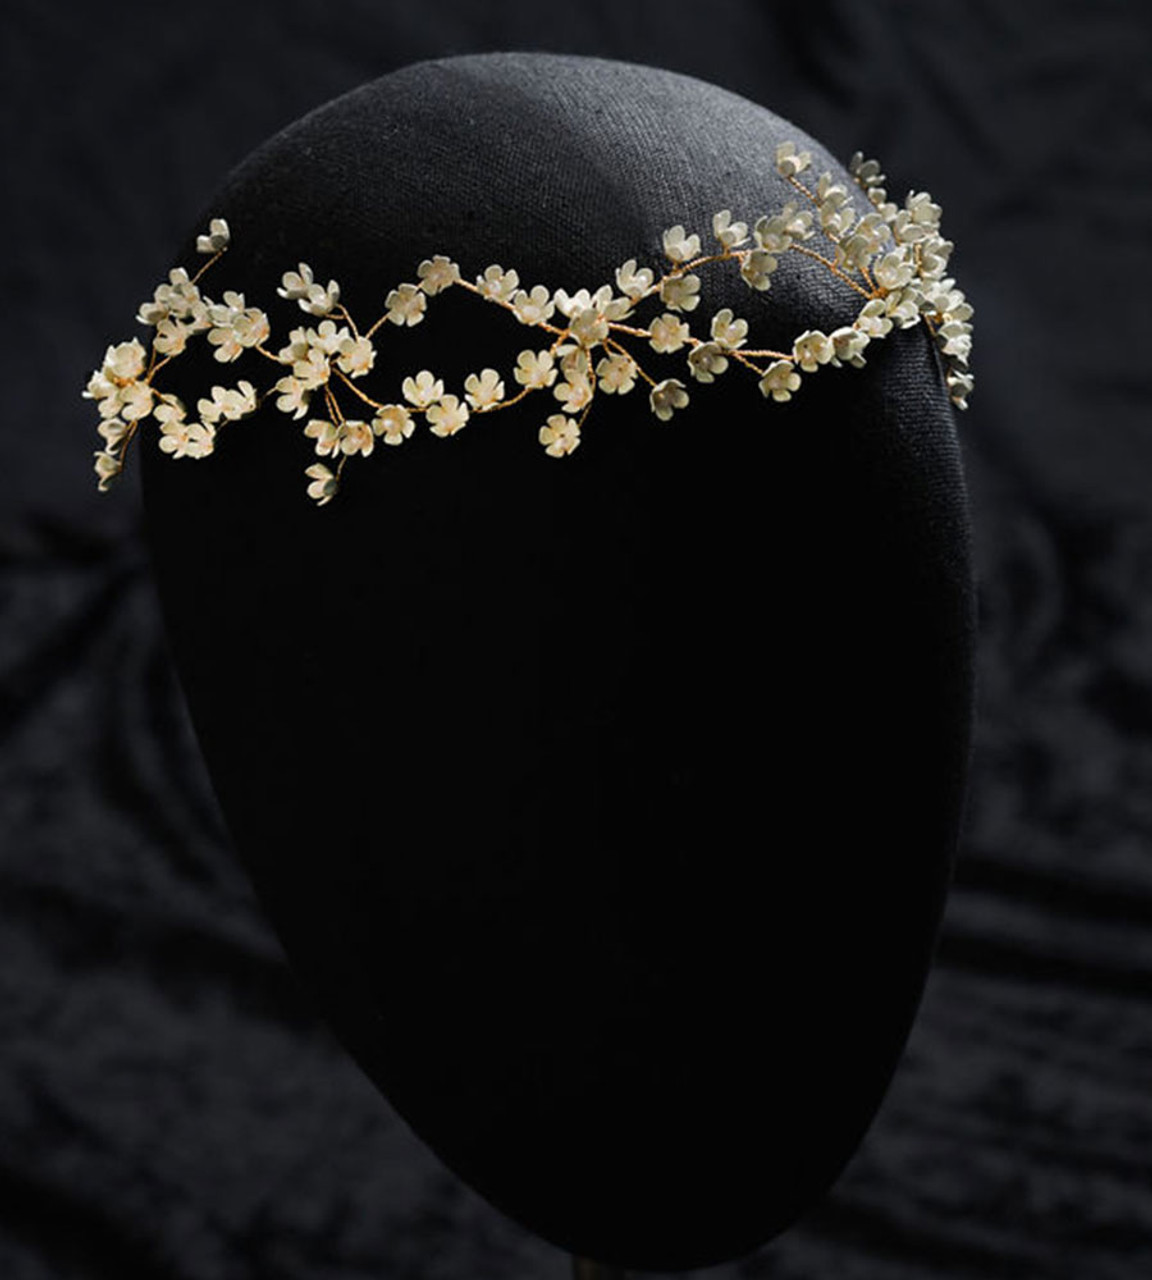 Erica Koesler A-5673 - Gold Garland flowers accented with opal stones